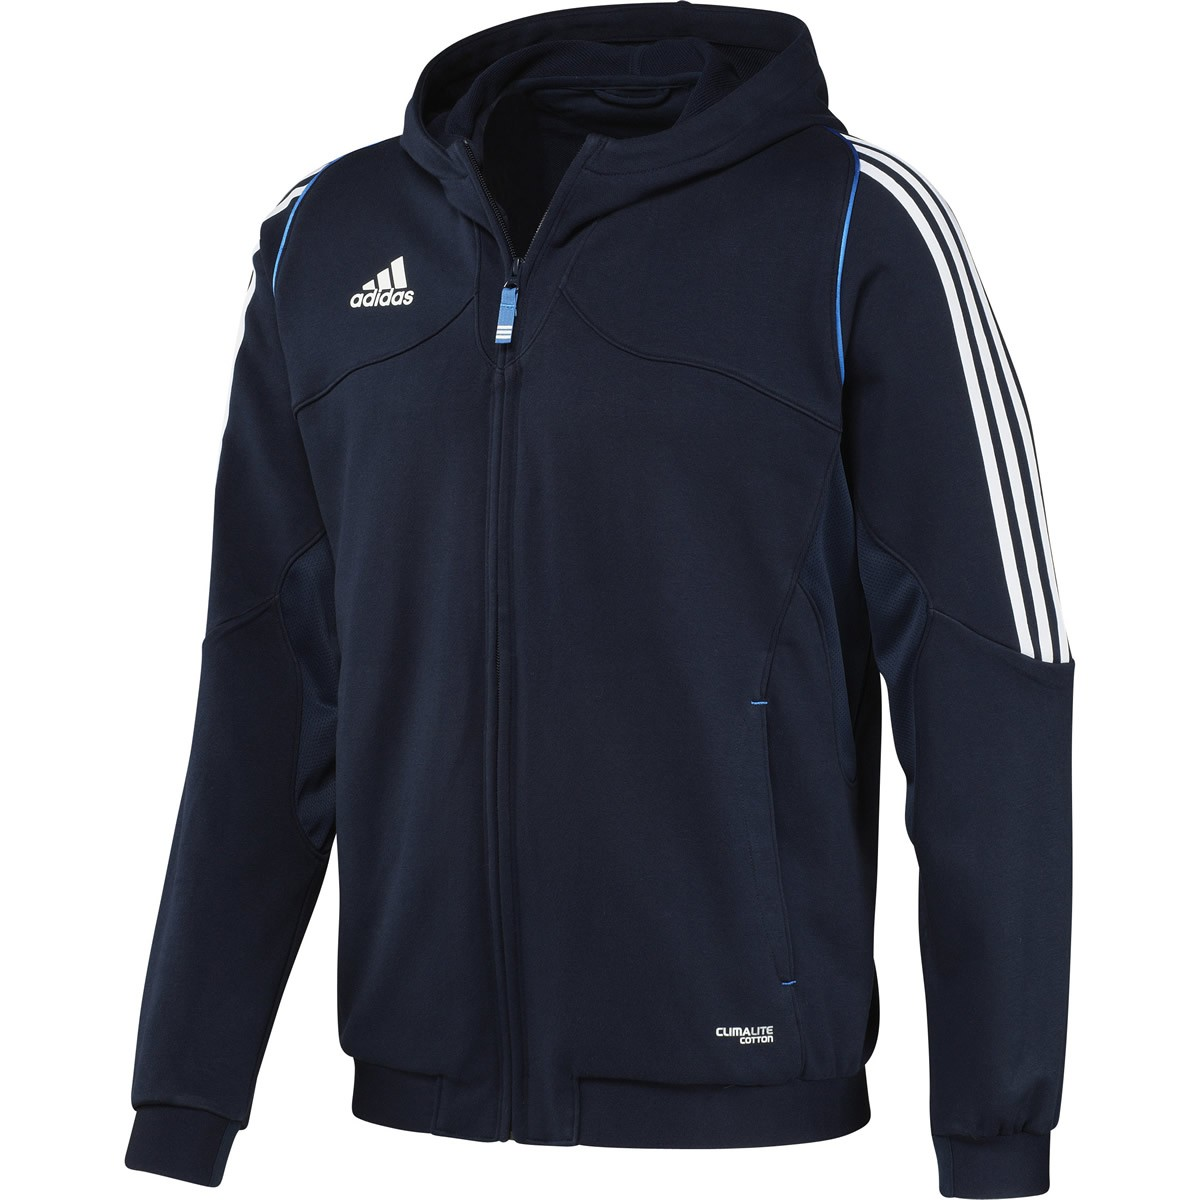 adidas m nner t12 team hoodie hoody herren kapuzenpullover sweatjacke sale ebay. Black Bedroom Furniture Sets. Home Design Ideas